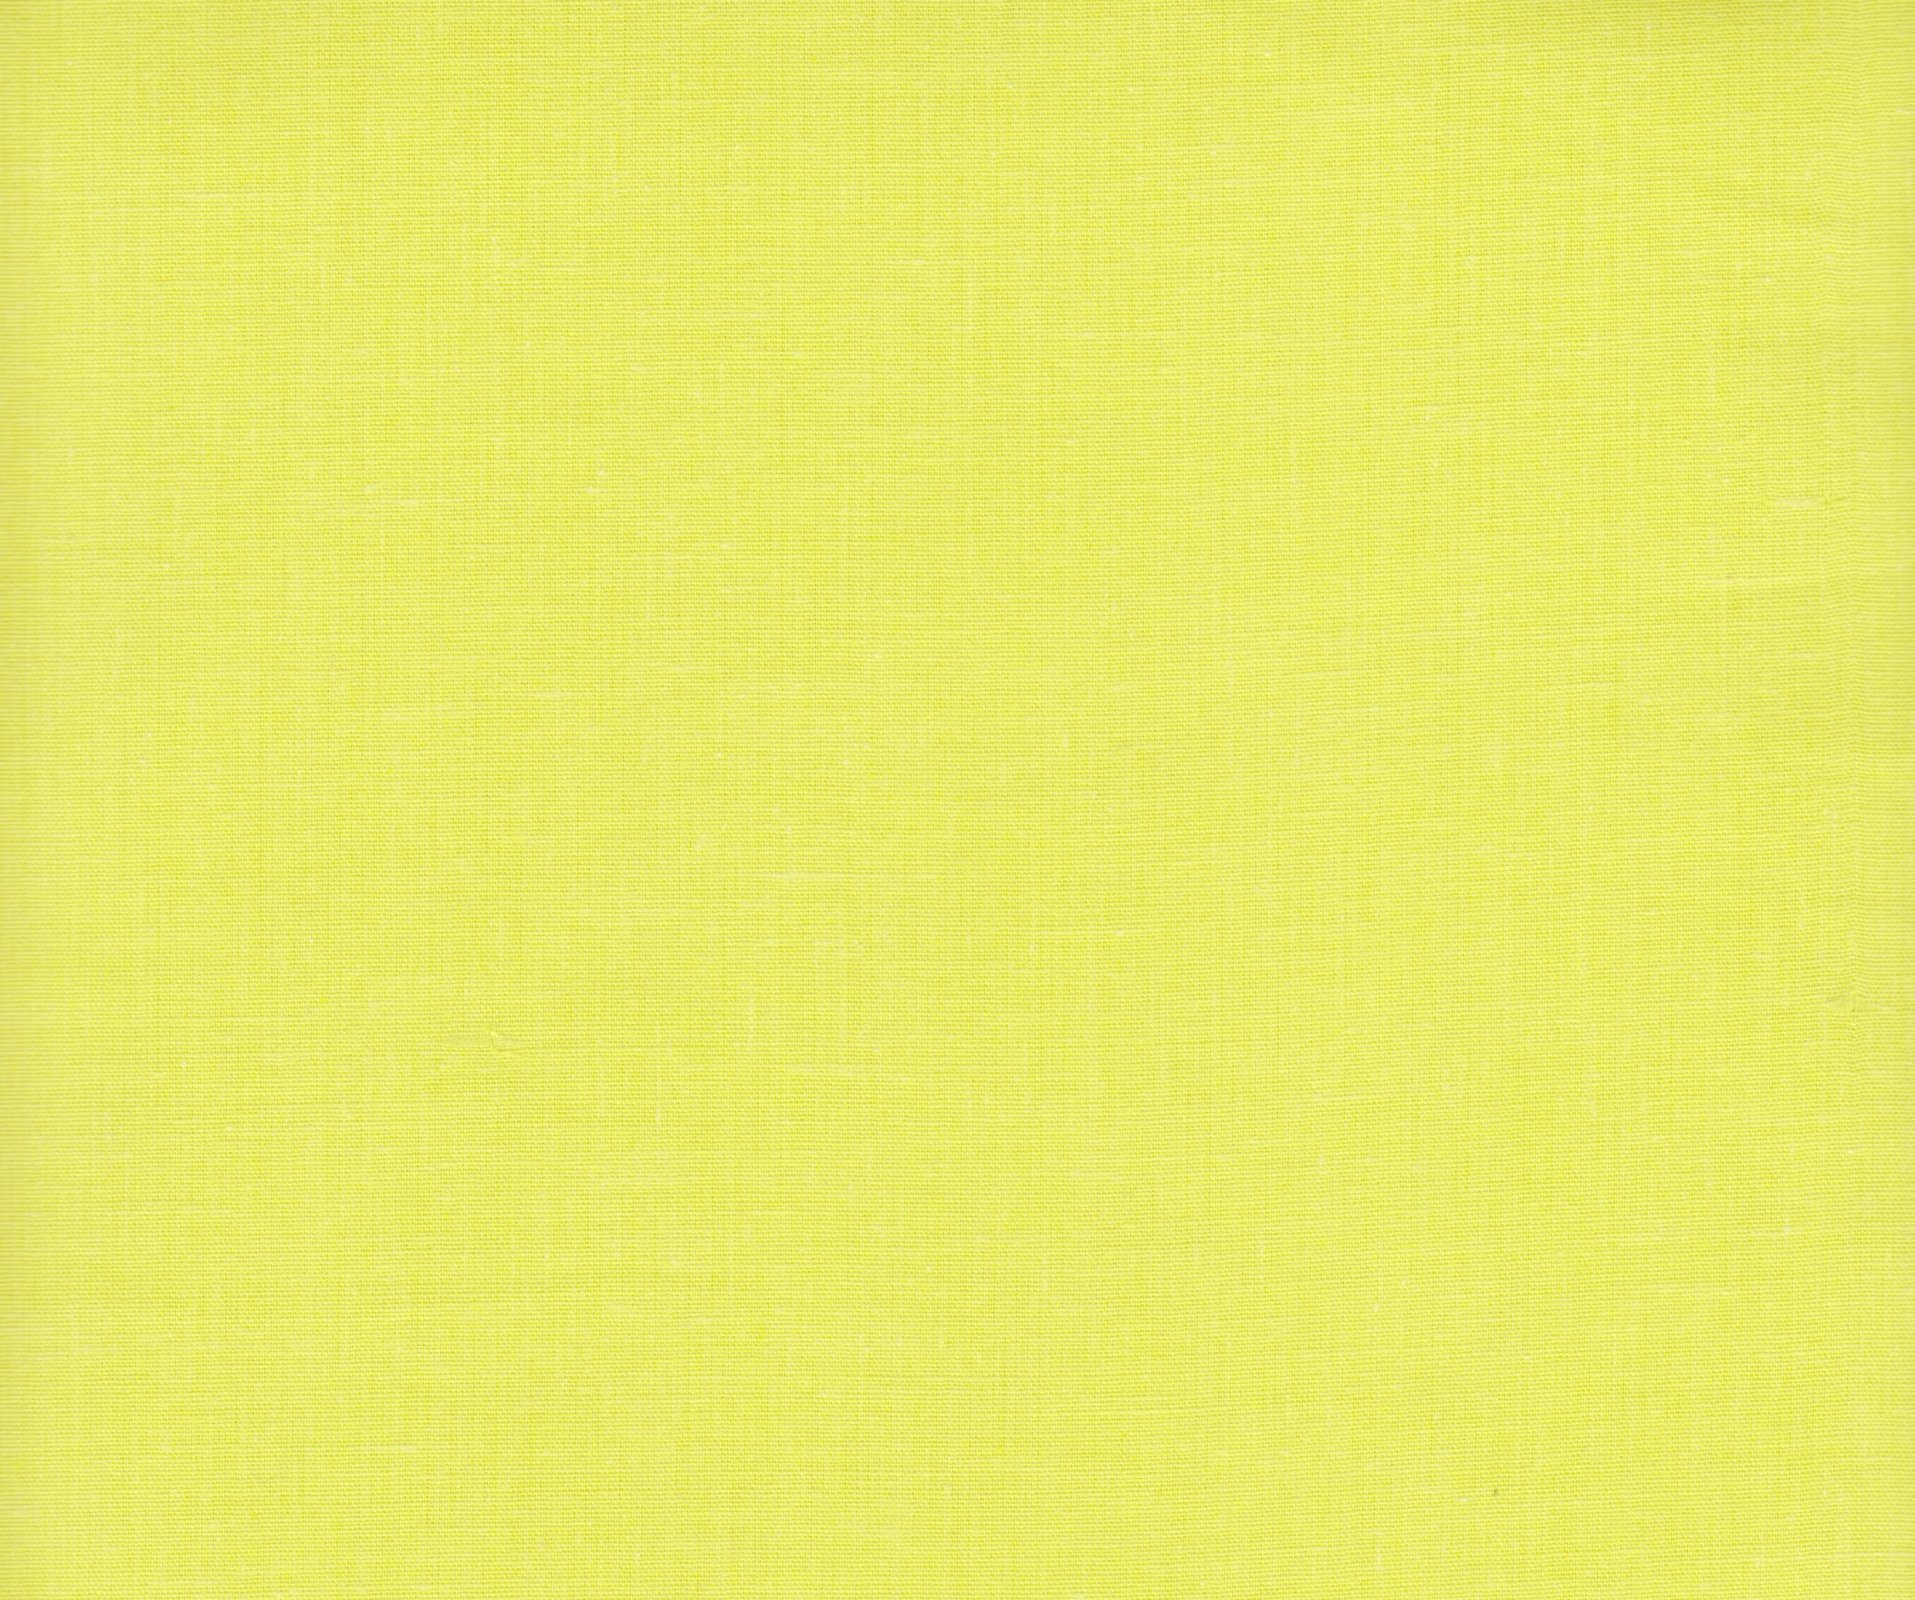 PROMO* Raleigh Cotton/Poly Broadcloth - Lemon Yellow